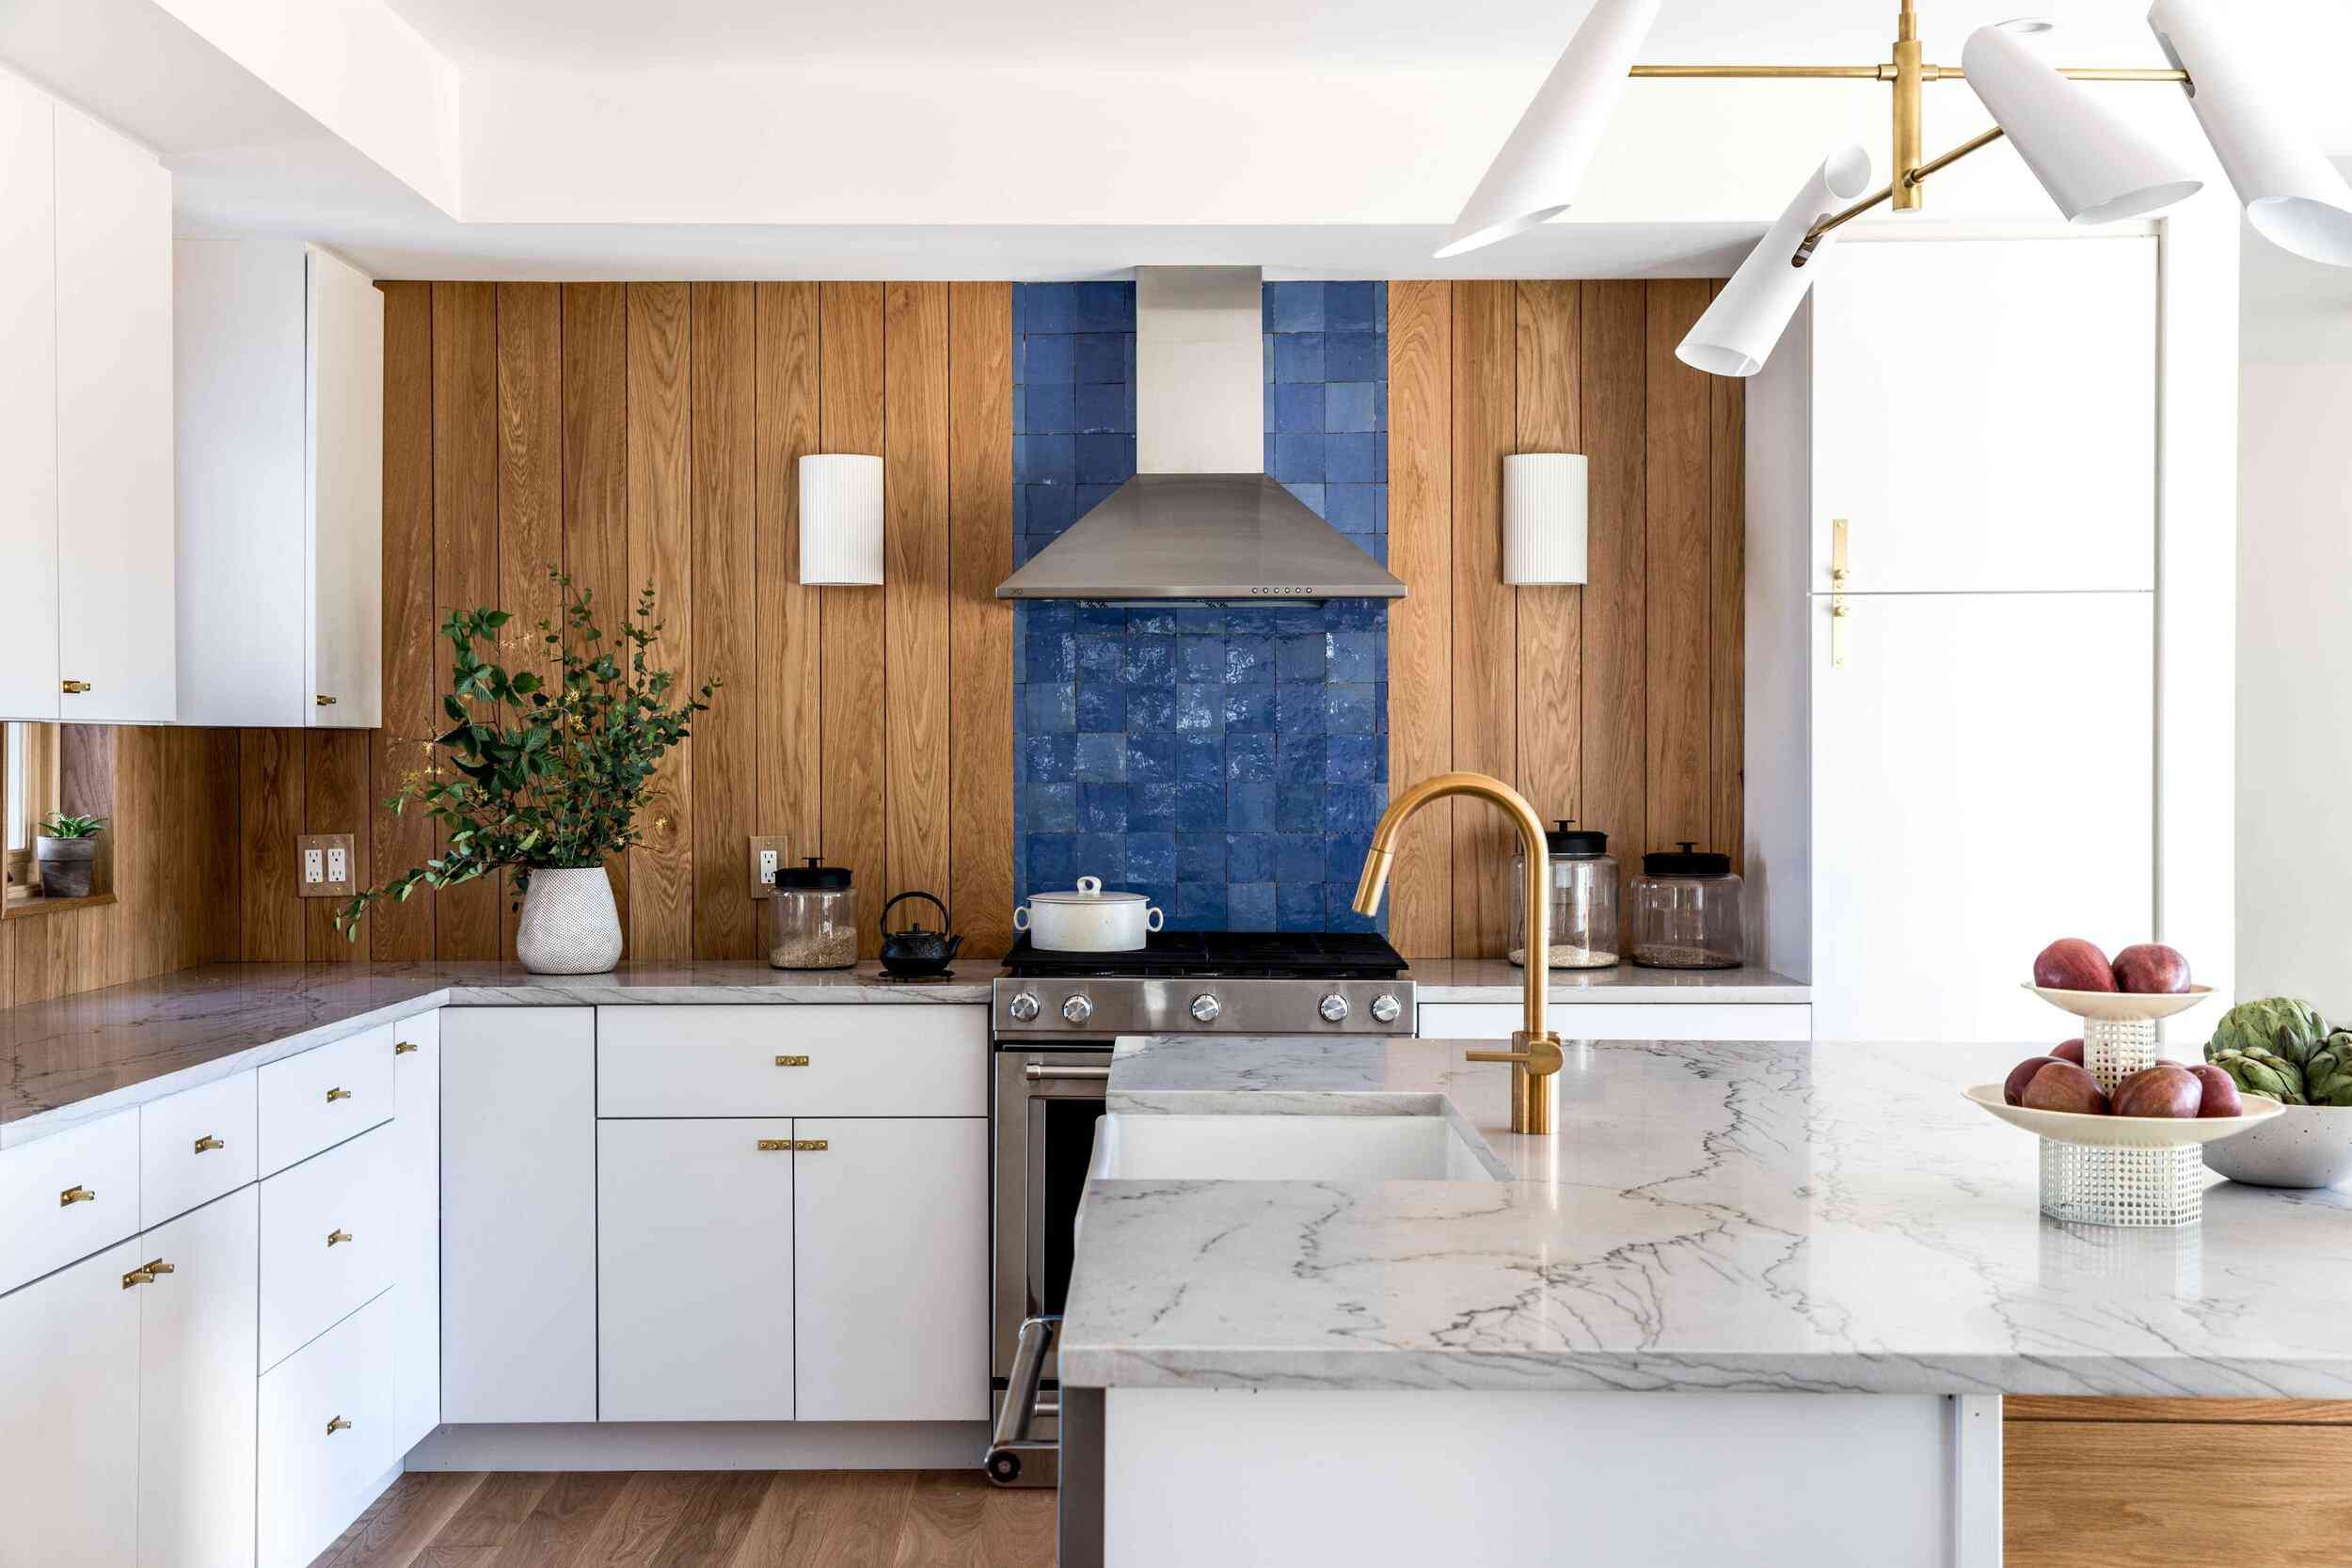 A kitchen lined with wood and blue tiles